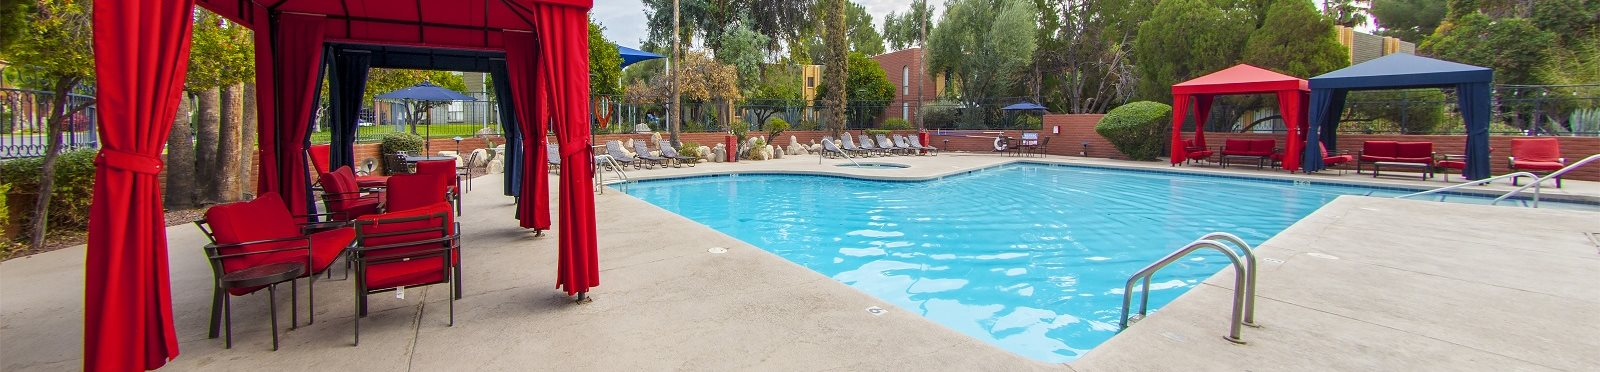 Cabana, pool, and pool patio at Mission Palm Apartments in Tucson, AZ